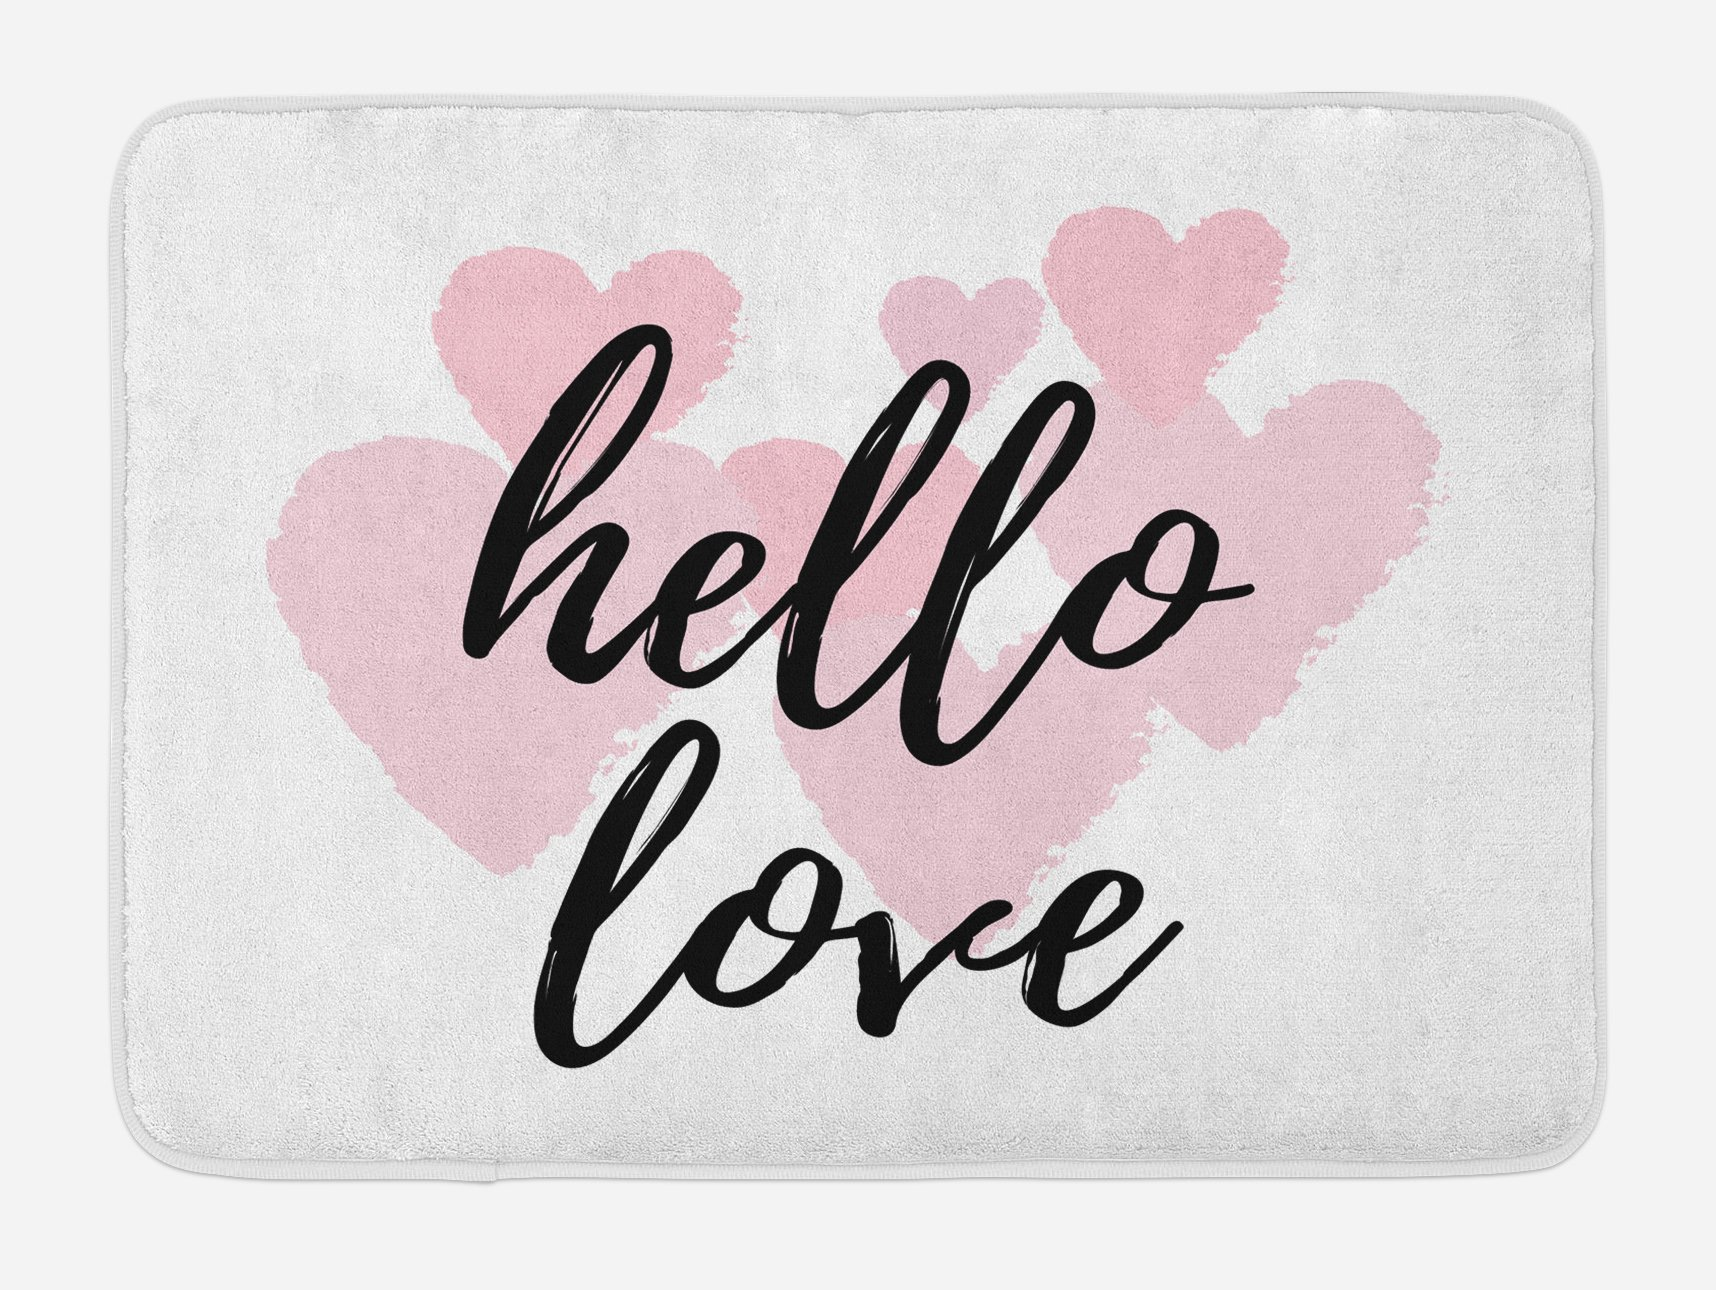 Ambesonne Hello Bath Mat, Hello Love Hand Lettering Print on Pink Hearts Inspirational Quotes Minimal Design, Plush Bathroom Decor Mat with Non Slip Backing, 29.5 W X 17.5 W Inches, Rose Black